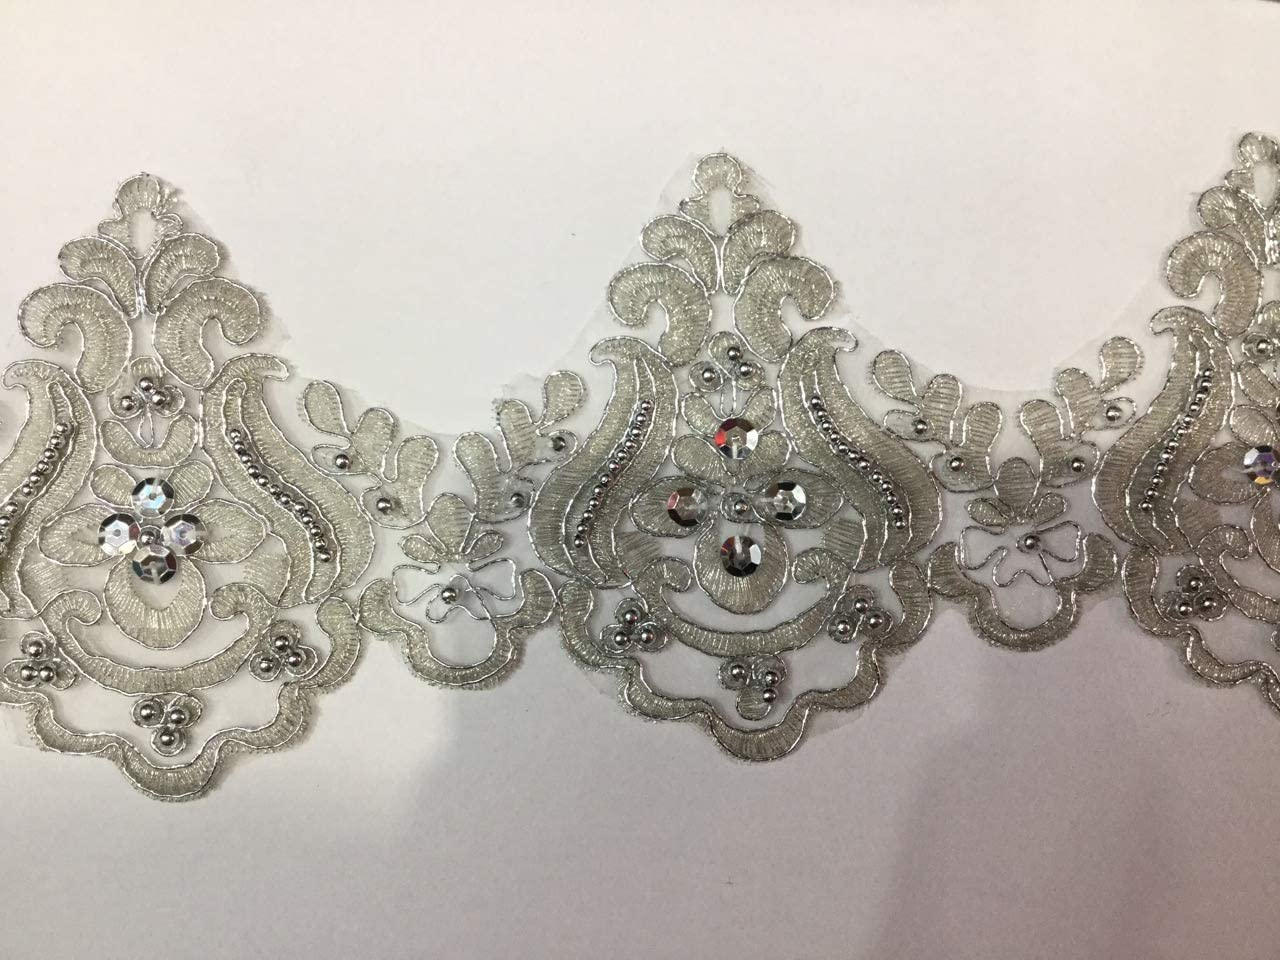 beading trims dress decorative supplies crafting,sewing Applique Sell By The Yard DIY Materials,Width 2.2 inches beaded lace trim